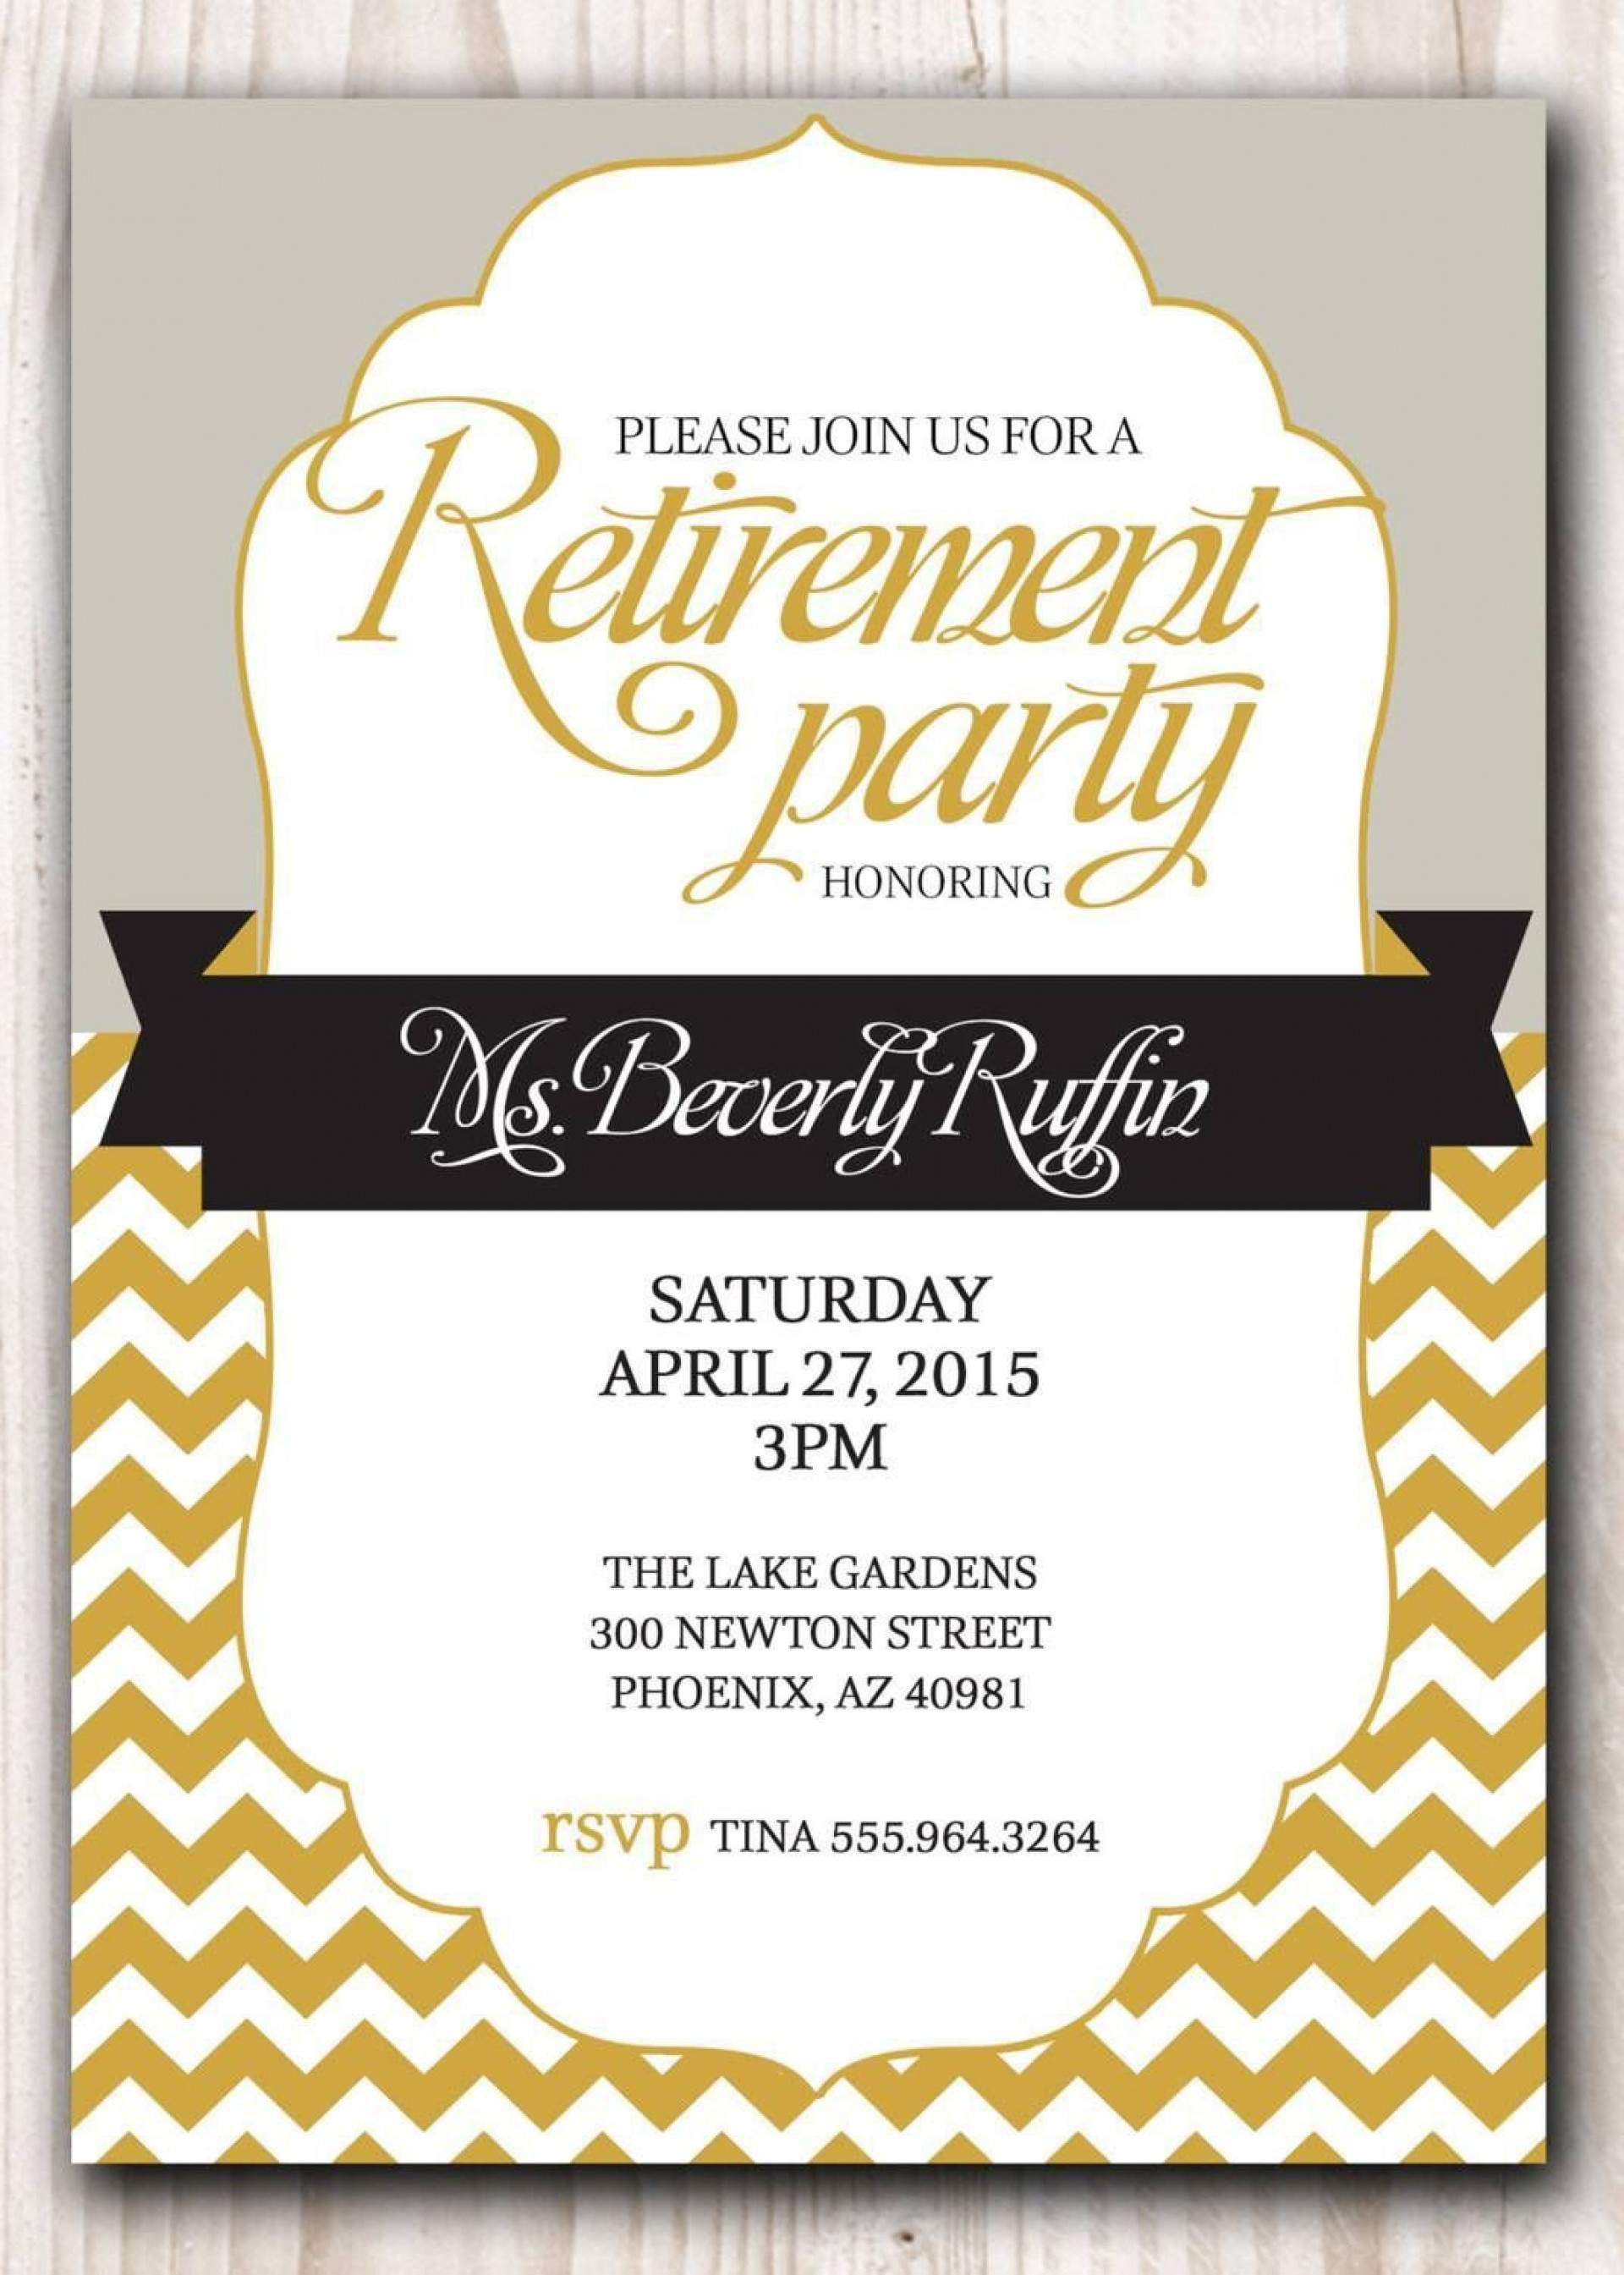 008 Staggering Retirement Party Invite Template High Resolution  Invitation Online M Word Free1920